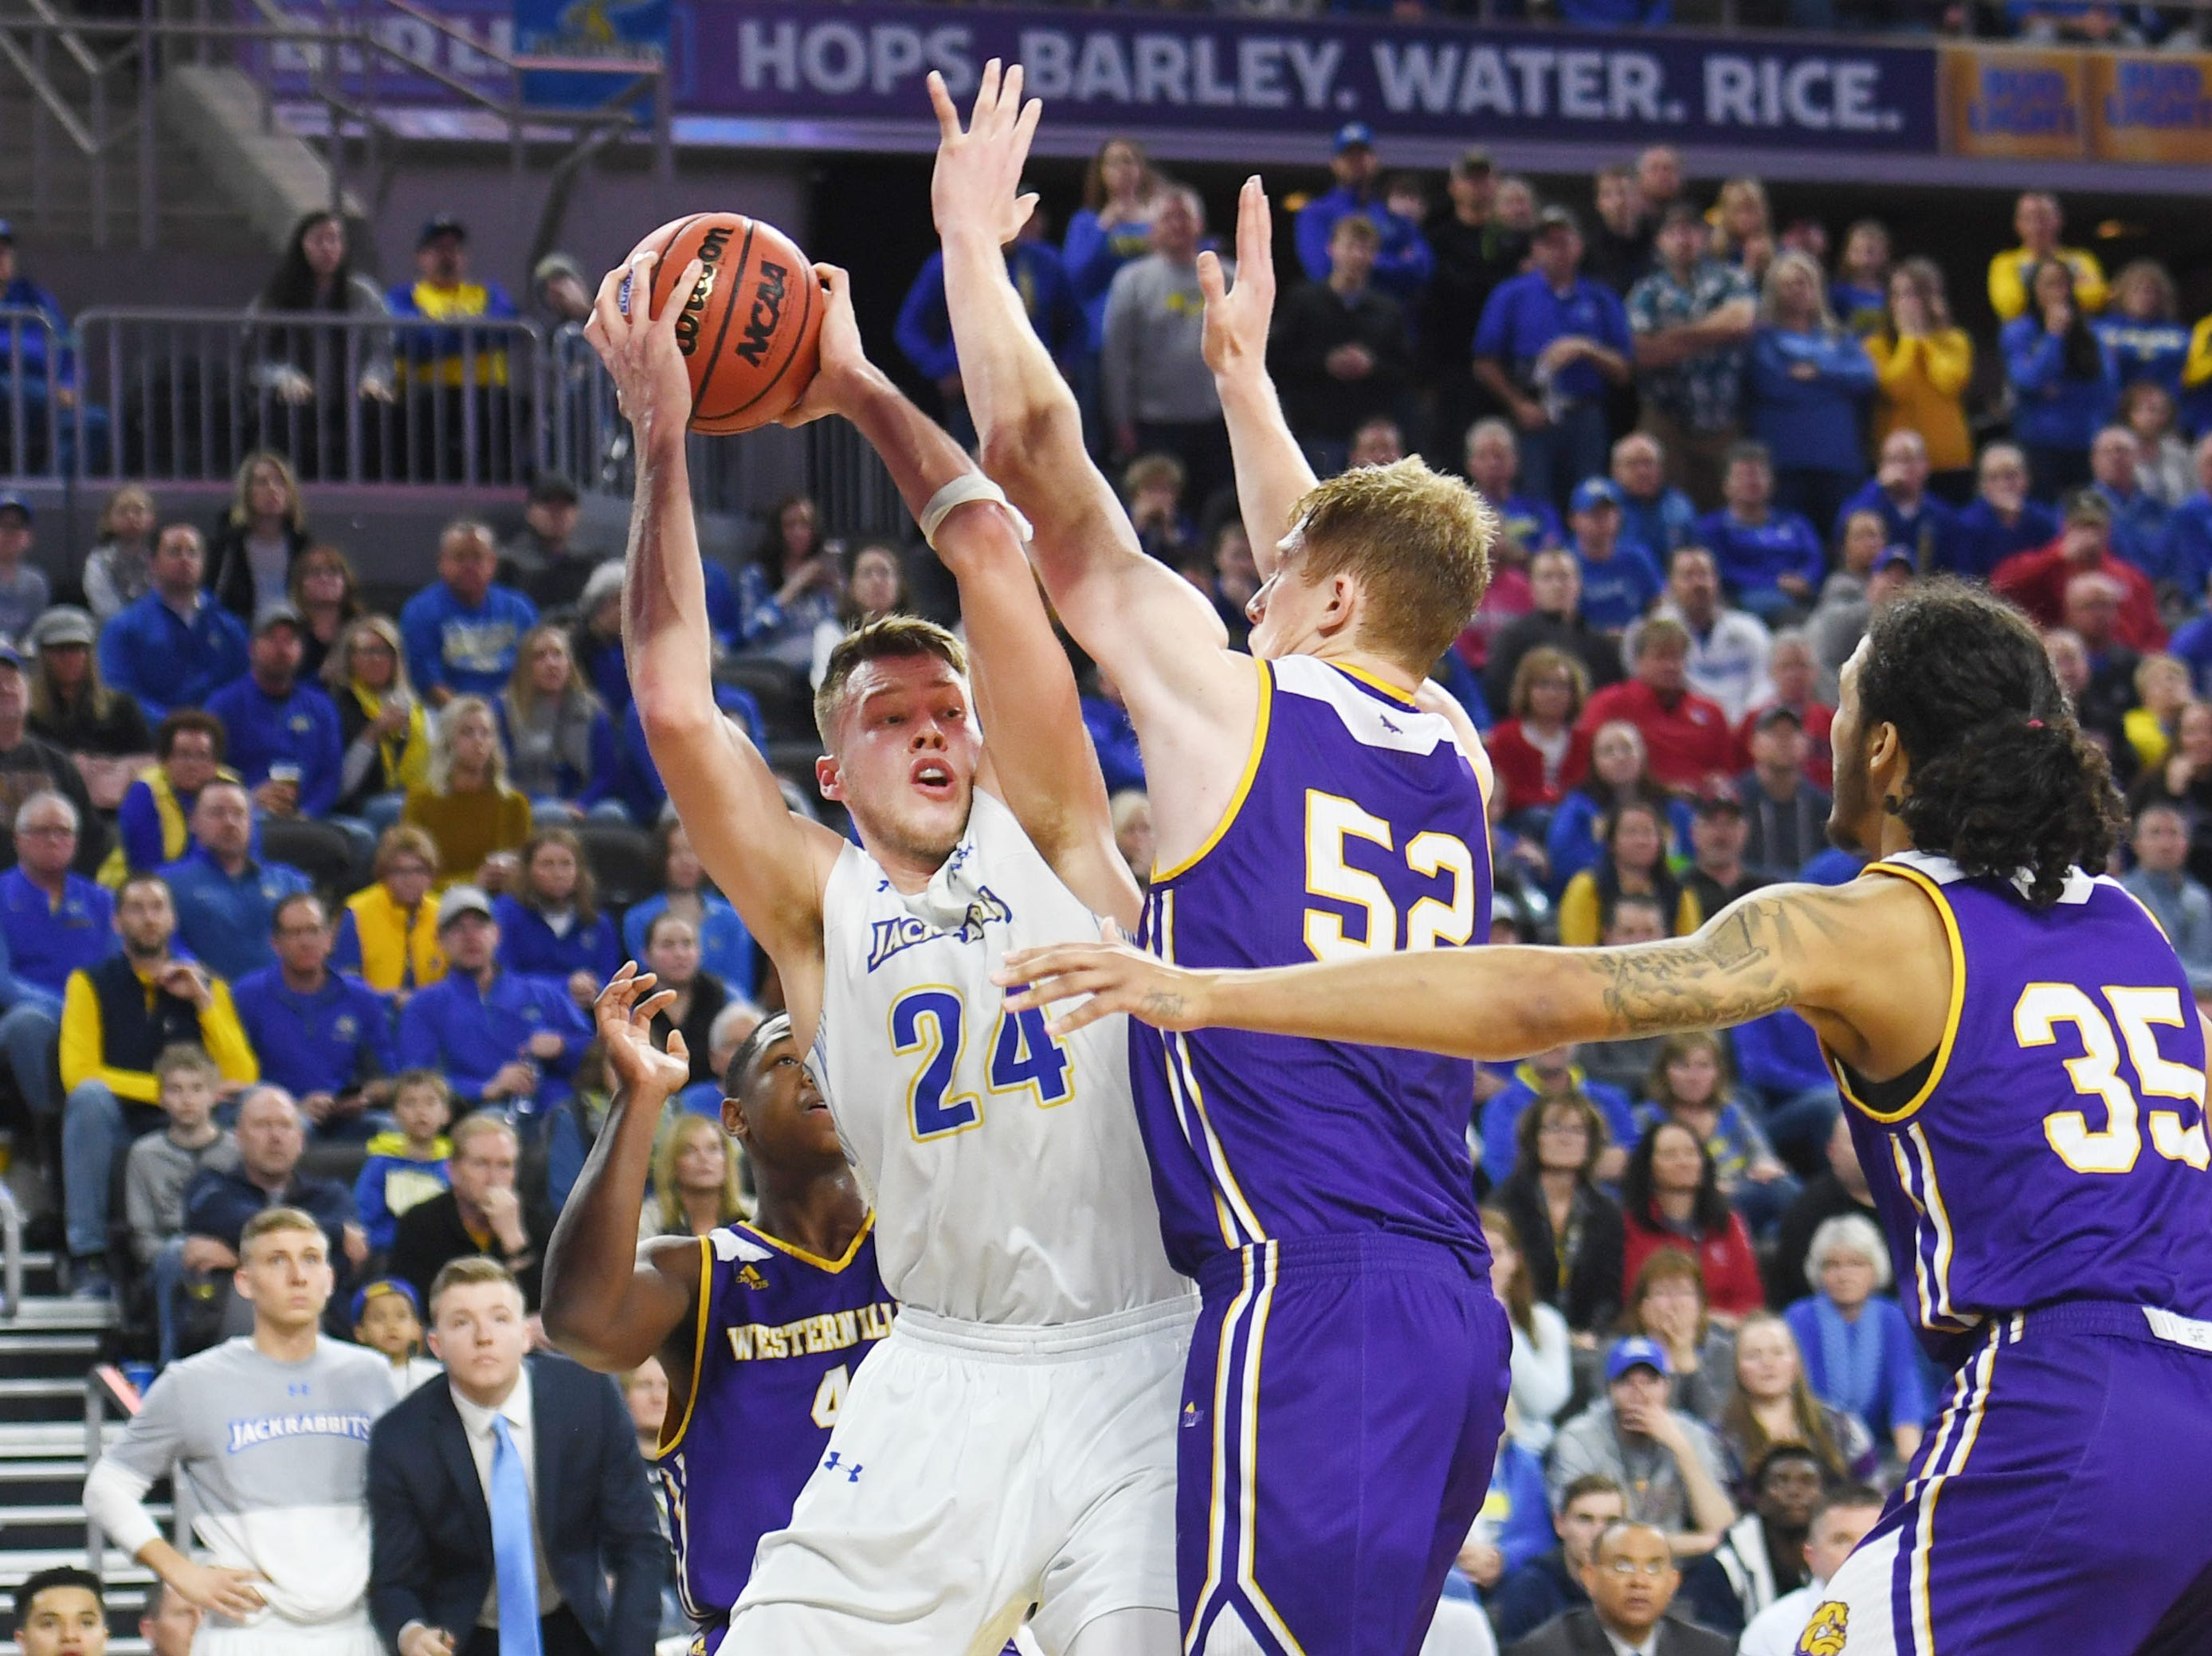 SDSU's Mike Daum goes against Western Illinois' Brandon Gilbeck during the game Saturday, March 9, in the Summit League tournament at the Denny Sanford Premier Center in Sioux Falls.